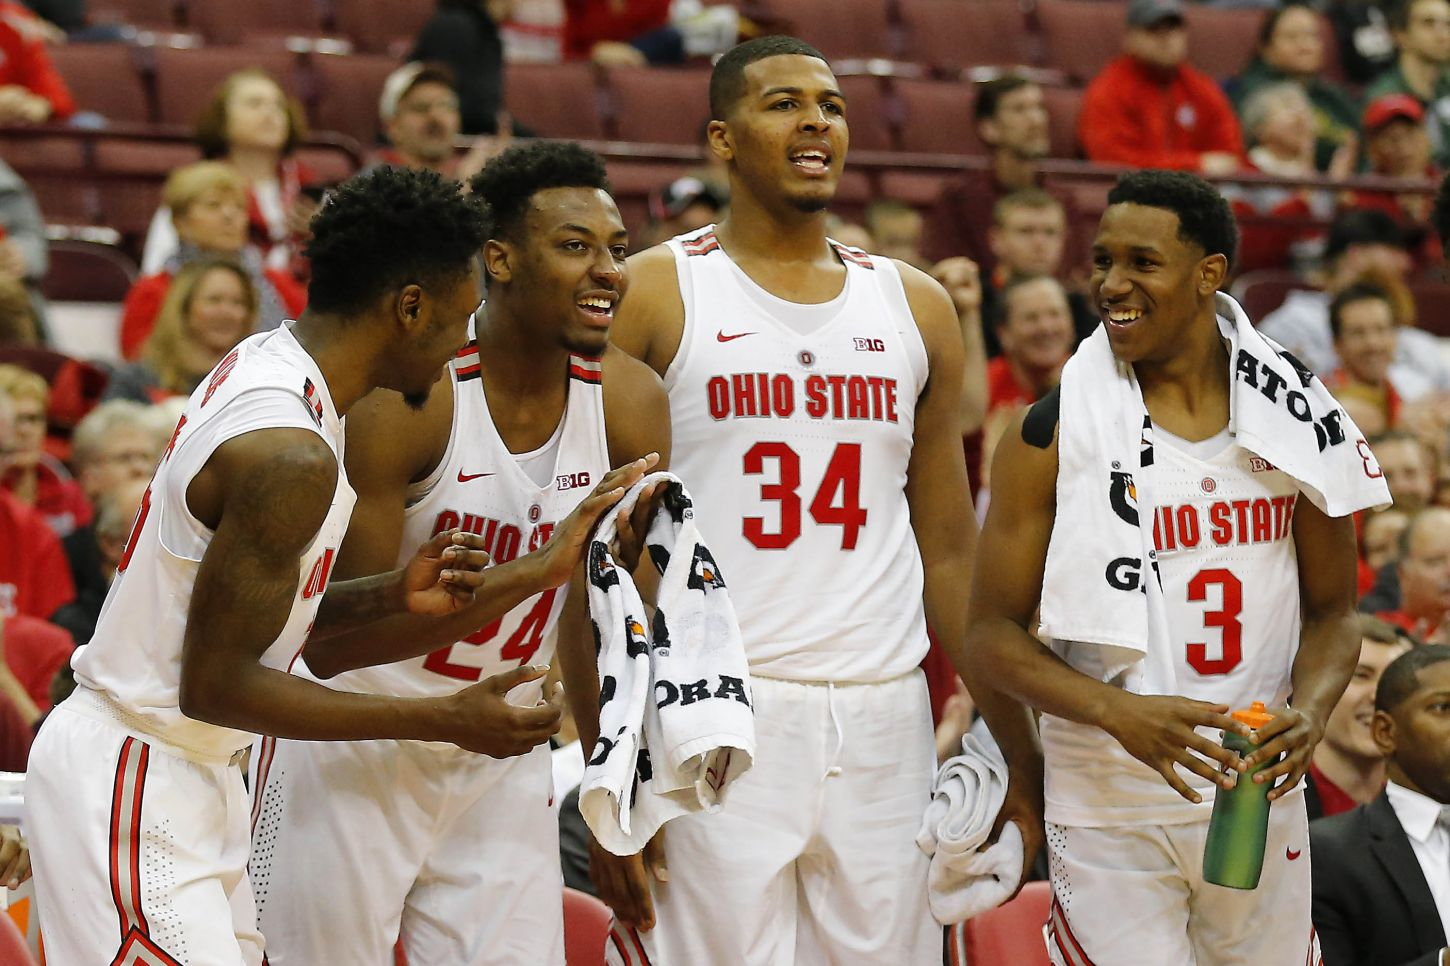 Dec 9, 2017; Columbus, OH, USA; Ohio State Buckeyes players (from left) Ohio State Buckeyes guard Kam Williams (15), Ohio State Buckeyes forward Andre Wesson (24), Ohio State Buckeyes forward Kaleb Wesson (34), and Ohio State Buckeyes guard C.J. Jackson (3) celebrate as the team wins comfortably over William & Mary Tribe during the second half at Value City Arena. Mandatory Credit: Joe Maiorana-USA TODAY Sports